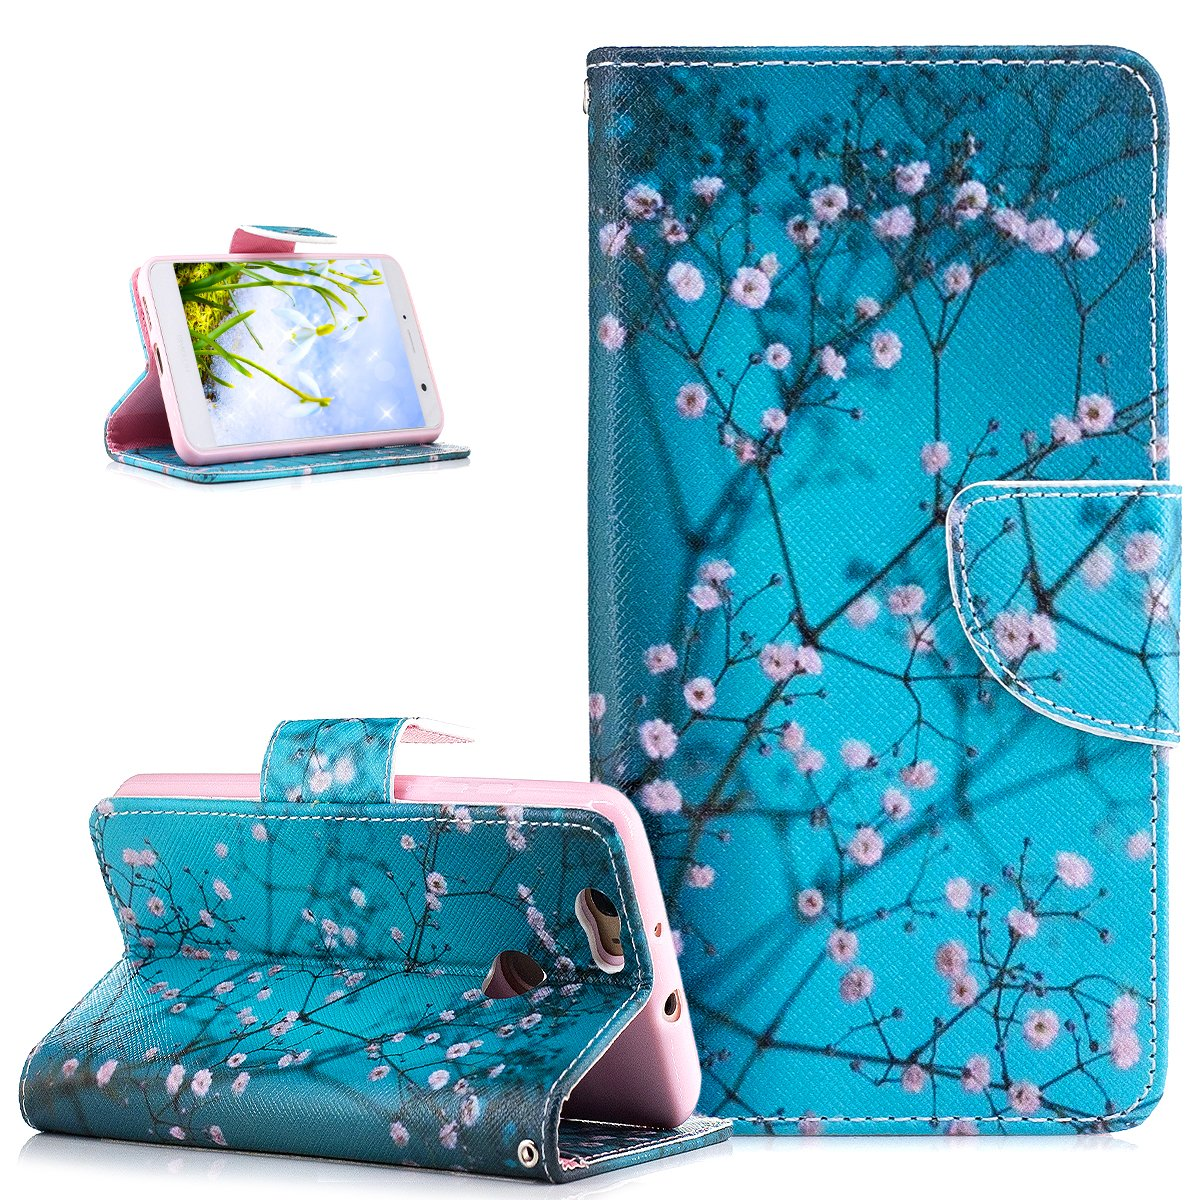 Huawei Nova Case, Huawei Nova Cover, ikasus Colorful Painted Flower Butterfly Pattern PU Leather Flip Fold Wallet Pouch Stand Credit Card ID Holders Case Cover for Huawei Nova, Blue Plum Blossom